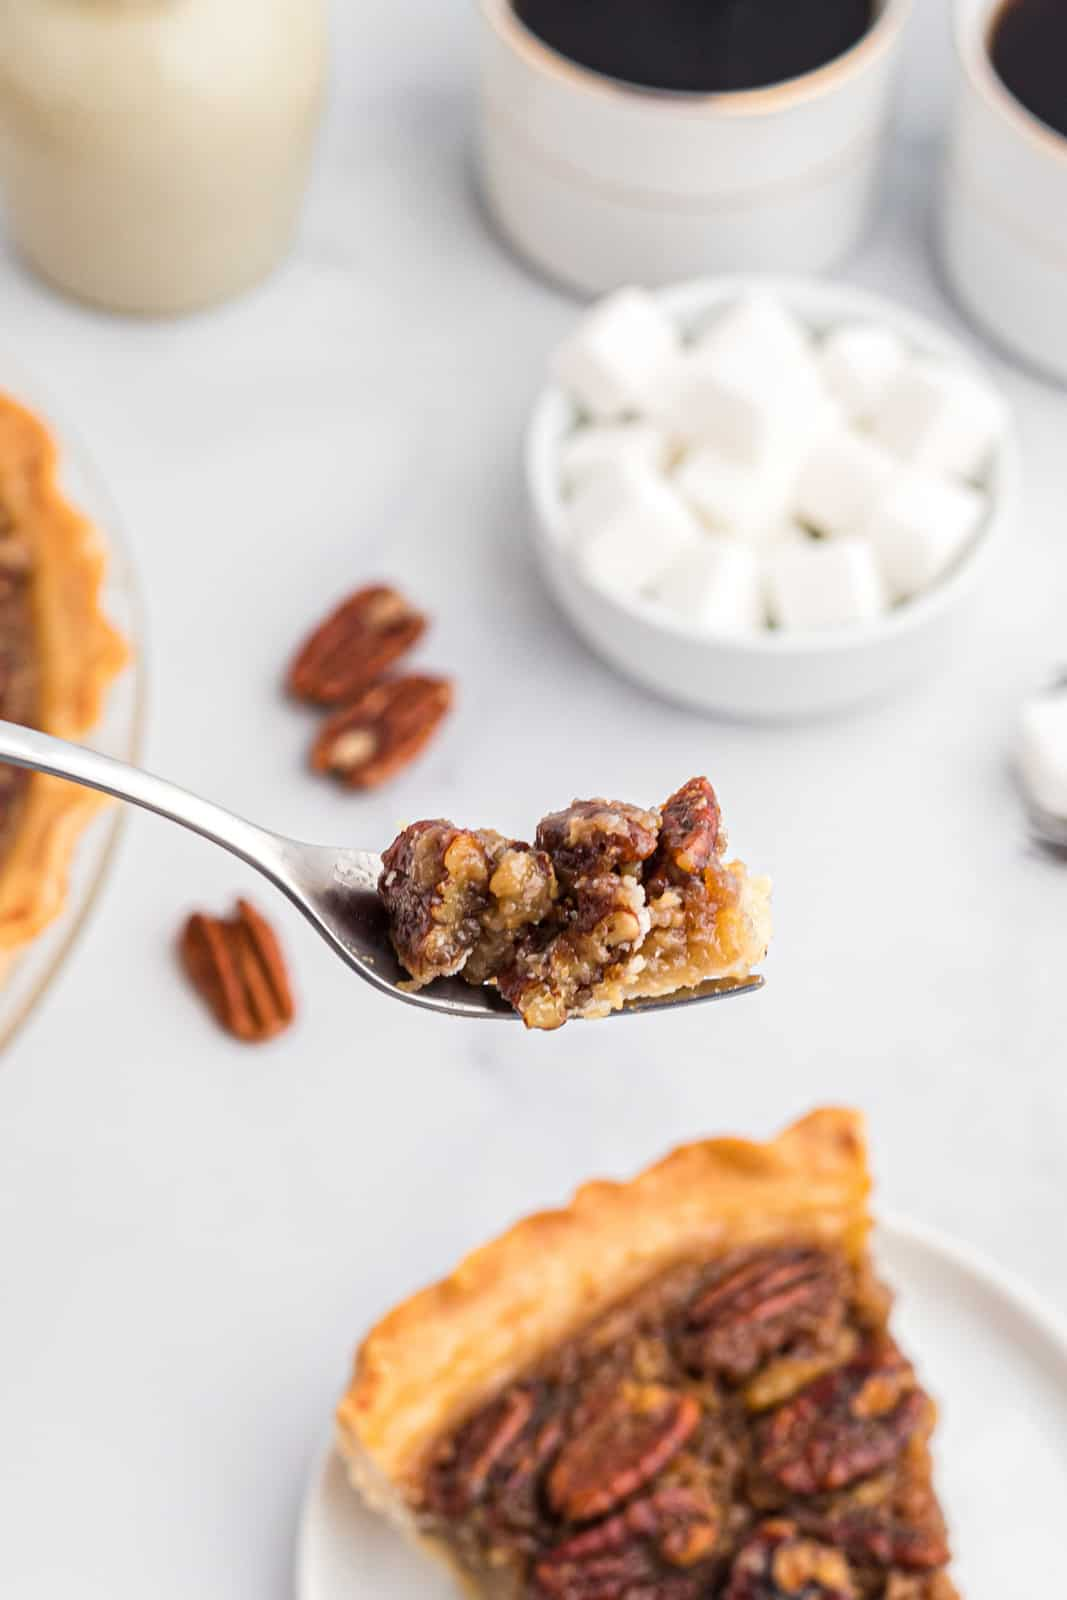 Fork holding up a bite of Bourbon Pecan Pie